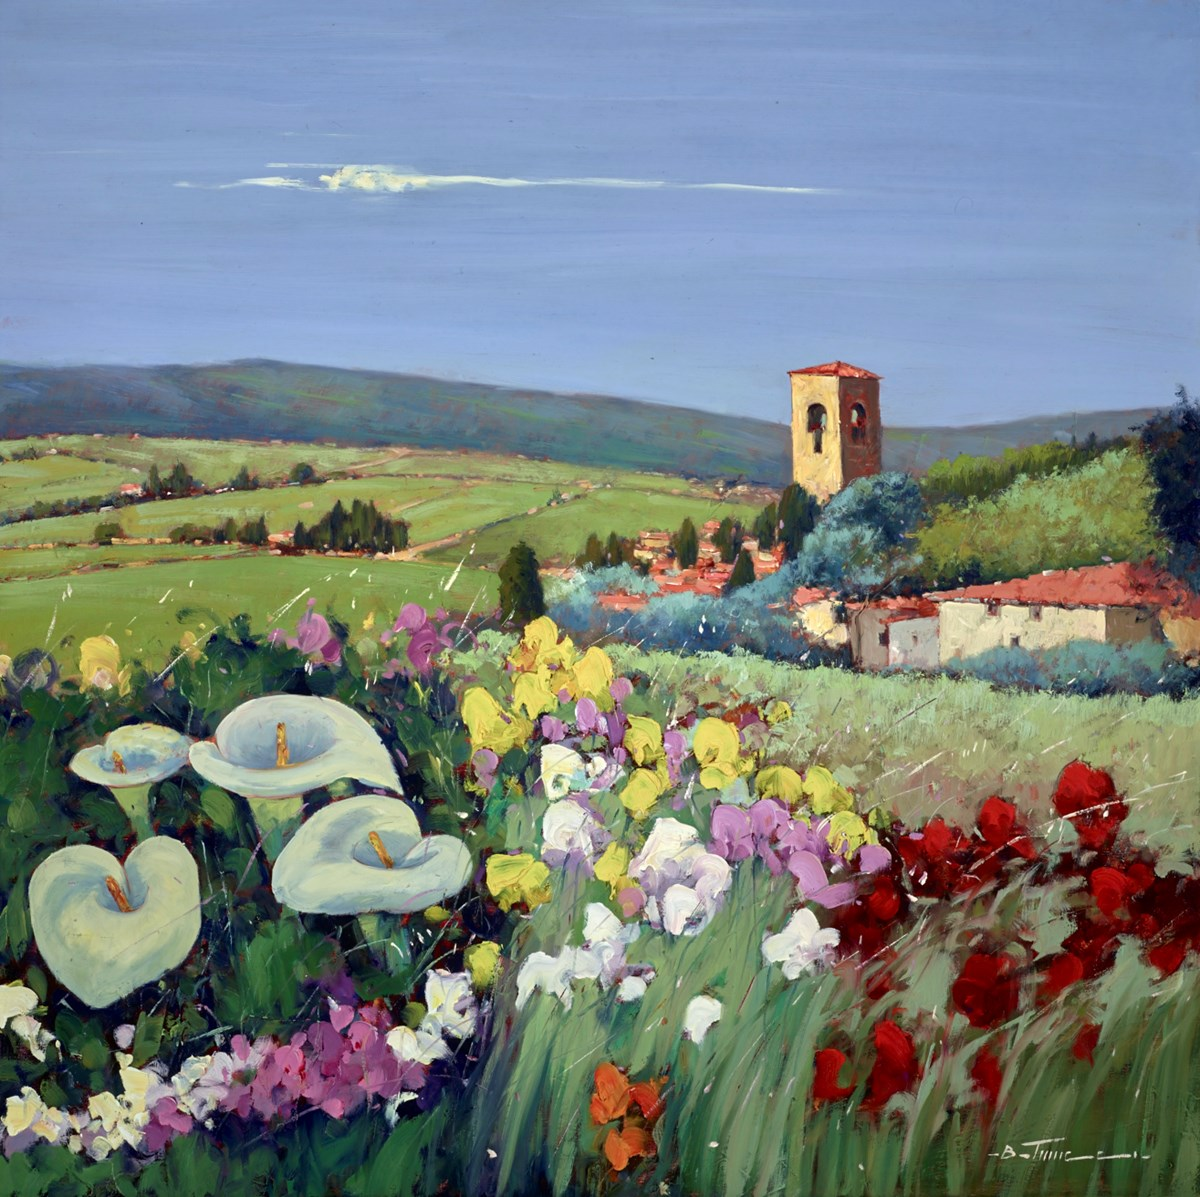 Campi Verdi V by bruno tinucci -  sized 39x39 inches. Available from Whitewall Galleries